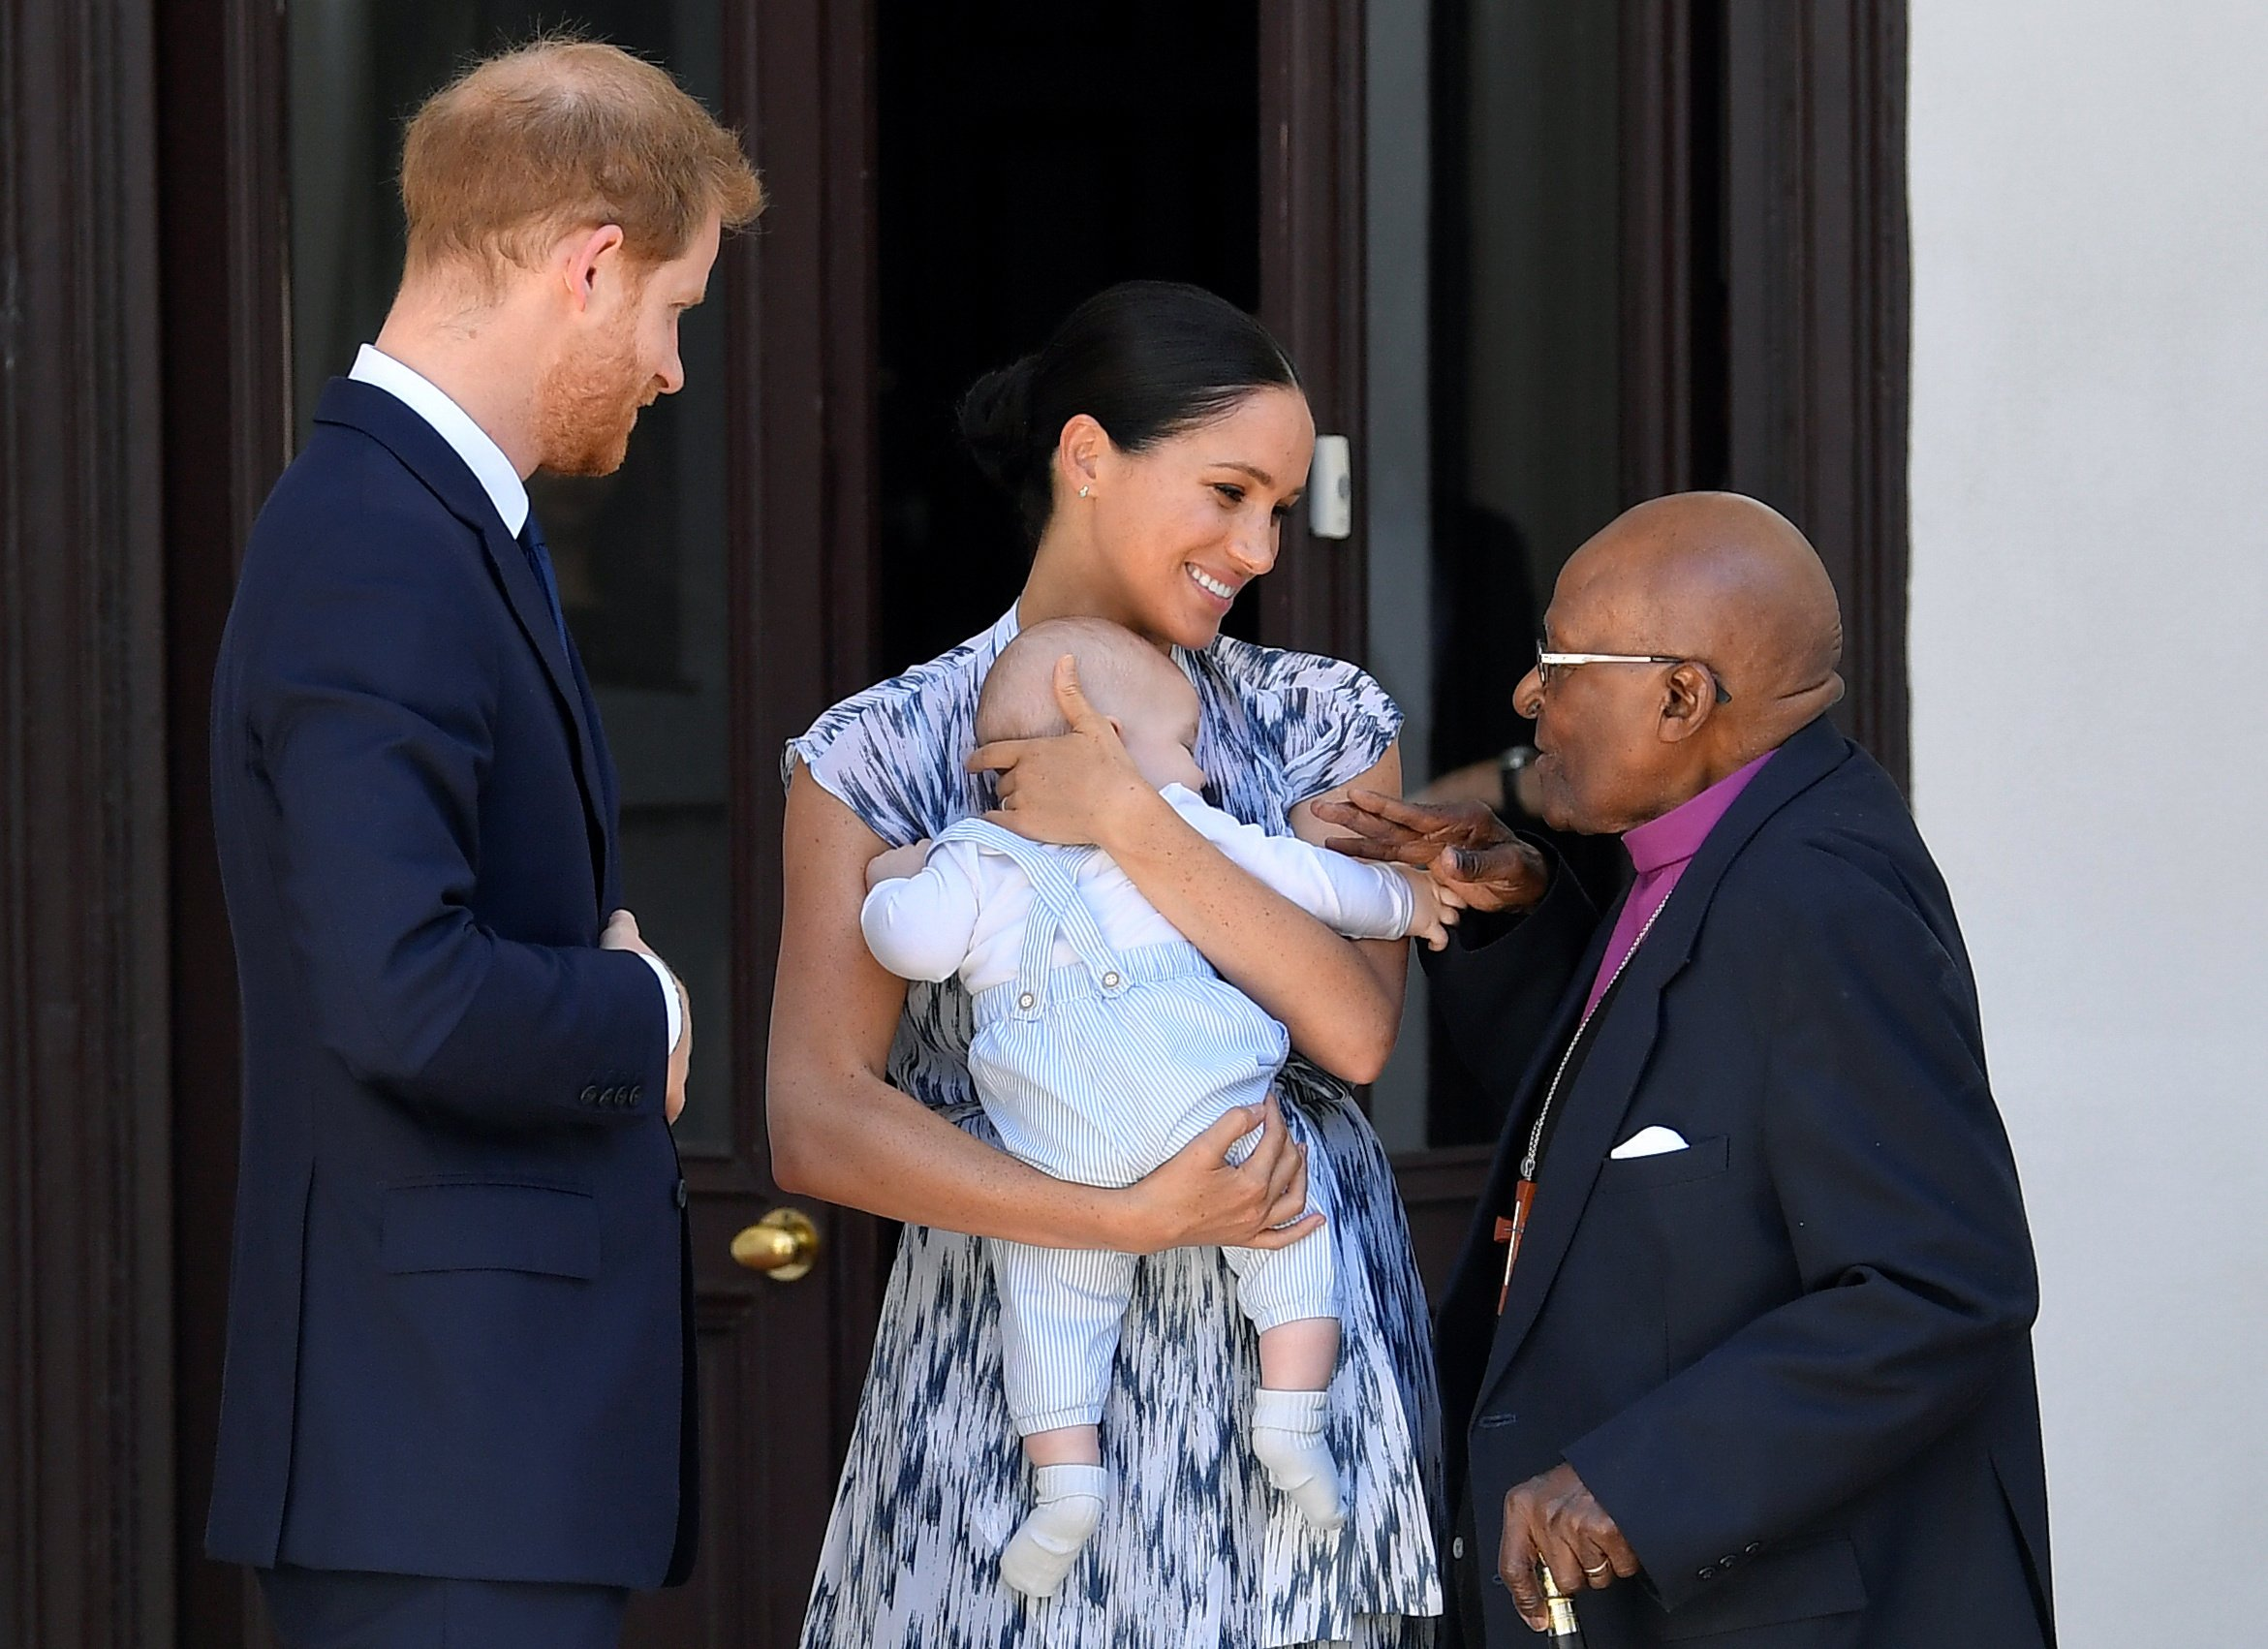 Image Credits: Getty Images / Toby Melville - Pool   Prince Harry, Duke of Sussex, Meghan, Duchess of Sussex and their baby son Archie Mountbatten-Windsor meet Archbishop Desmond Tutu at the Desmond & Leah Tutu Legacy Foundation during their royal tour of South Africa on September 25, 2019 in Cape Town, South Africa.